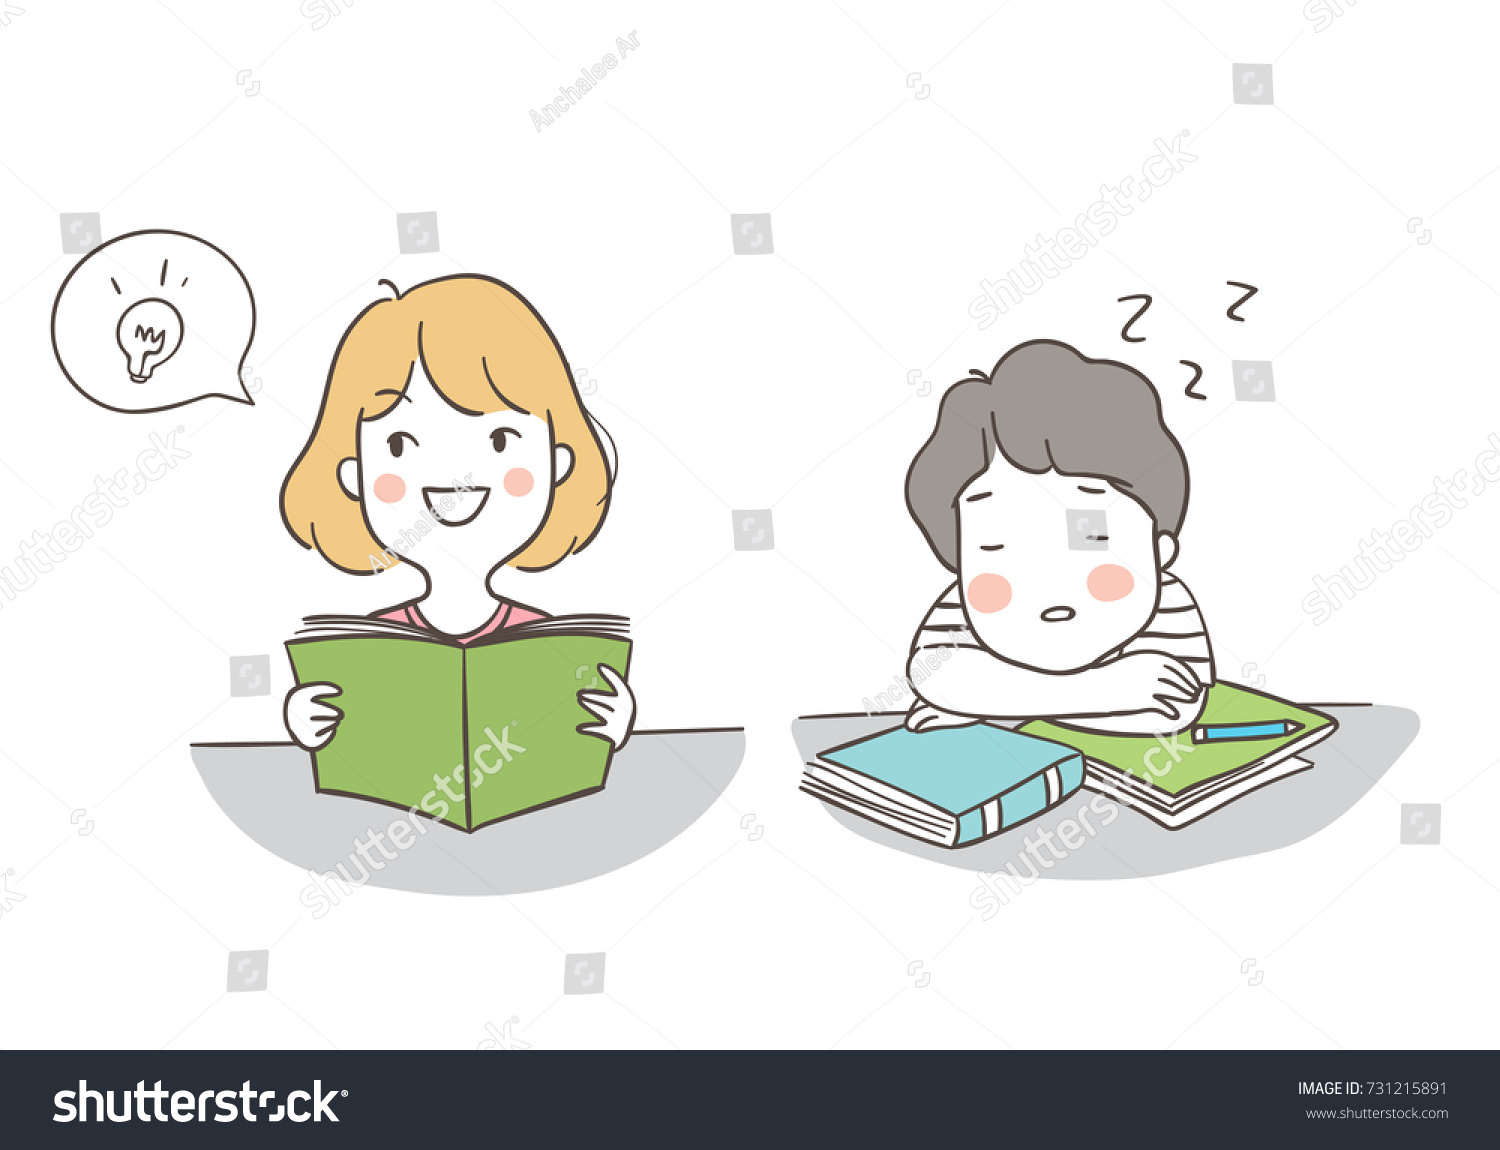 Draw vector illustration character design different pose a boy sleeping and a girl has a good